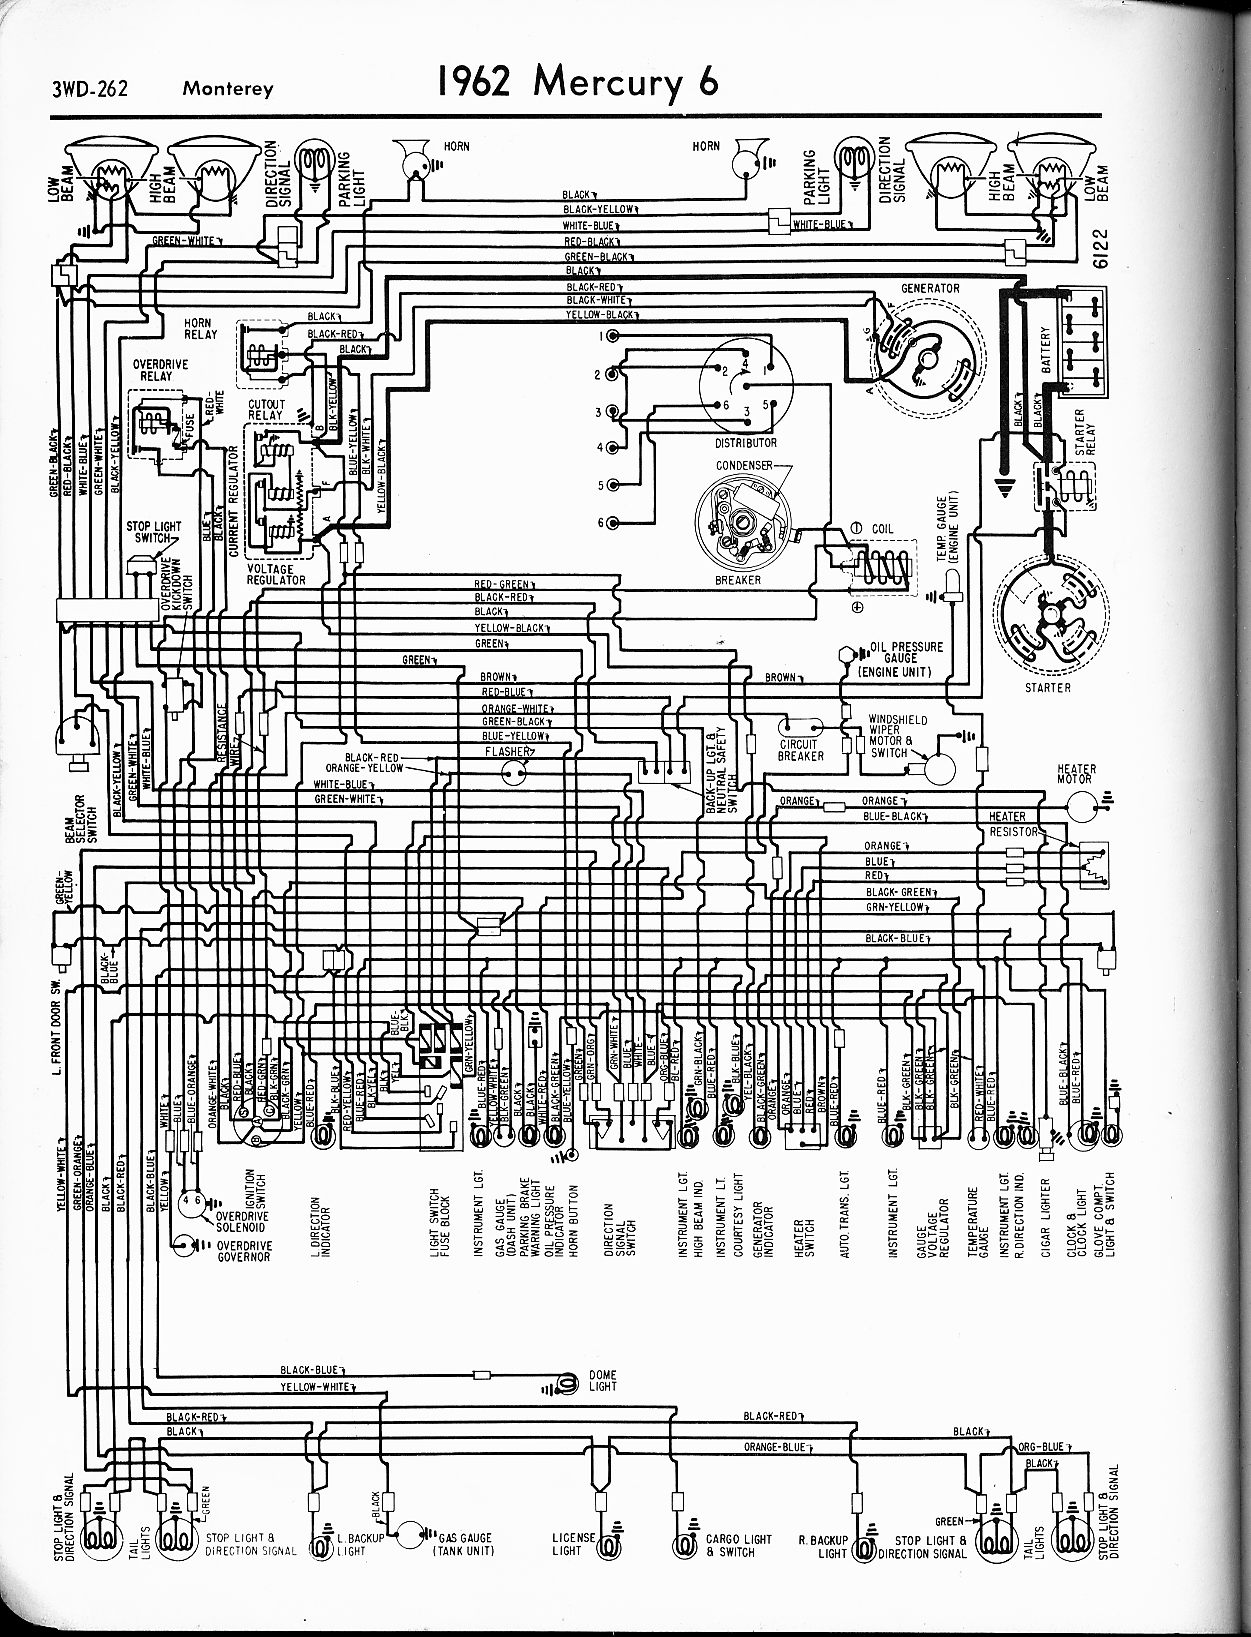 MWire5765 262 mercury wiring diagrams the old car manual project 1966 fairlane wiring diagram at aneh.co